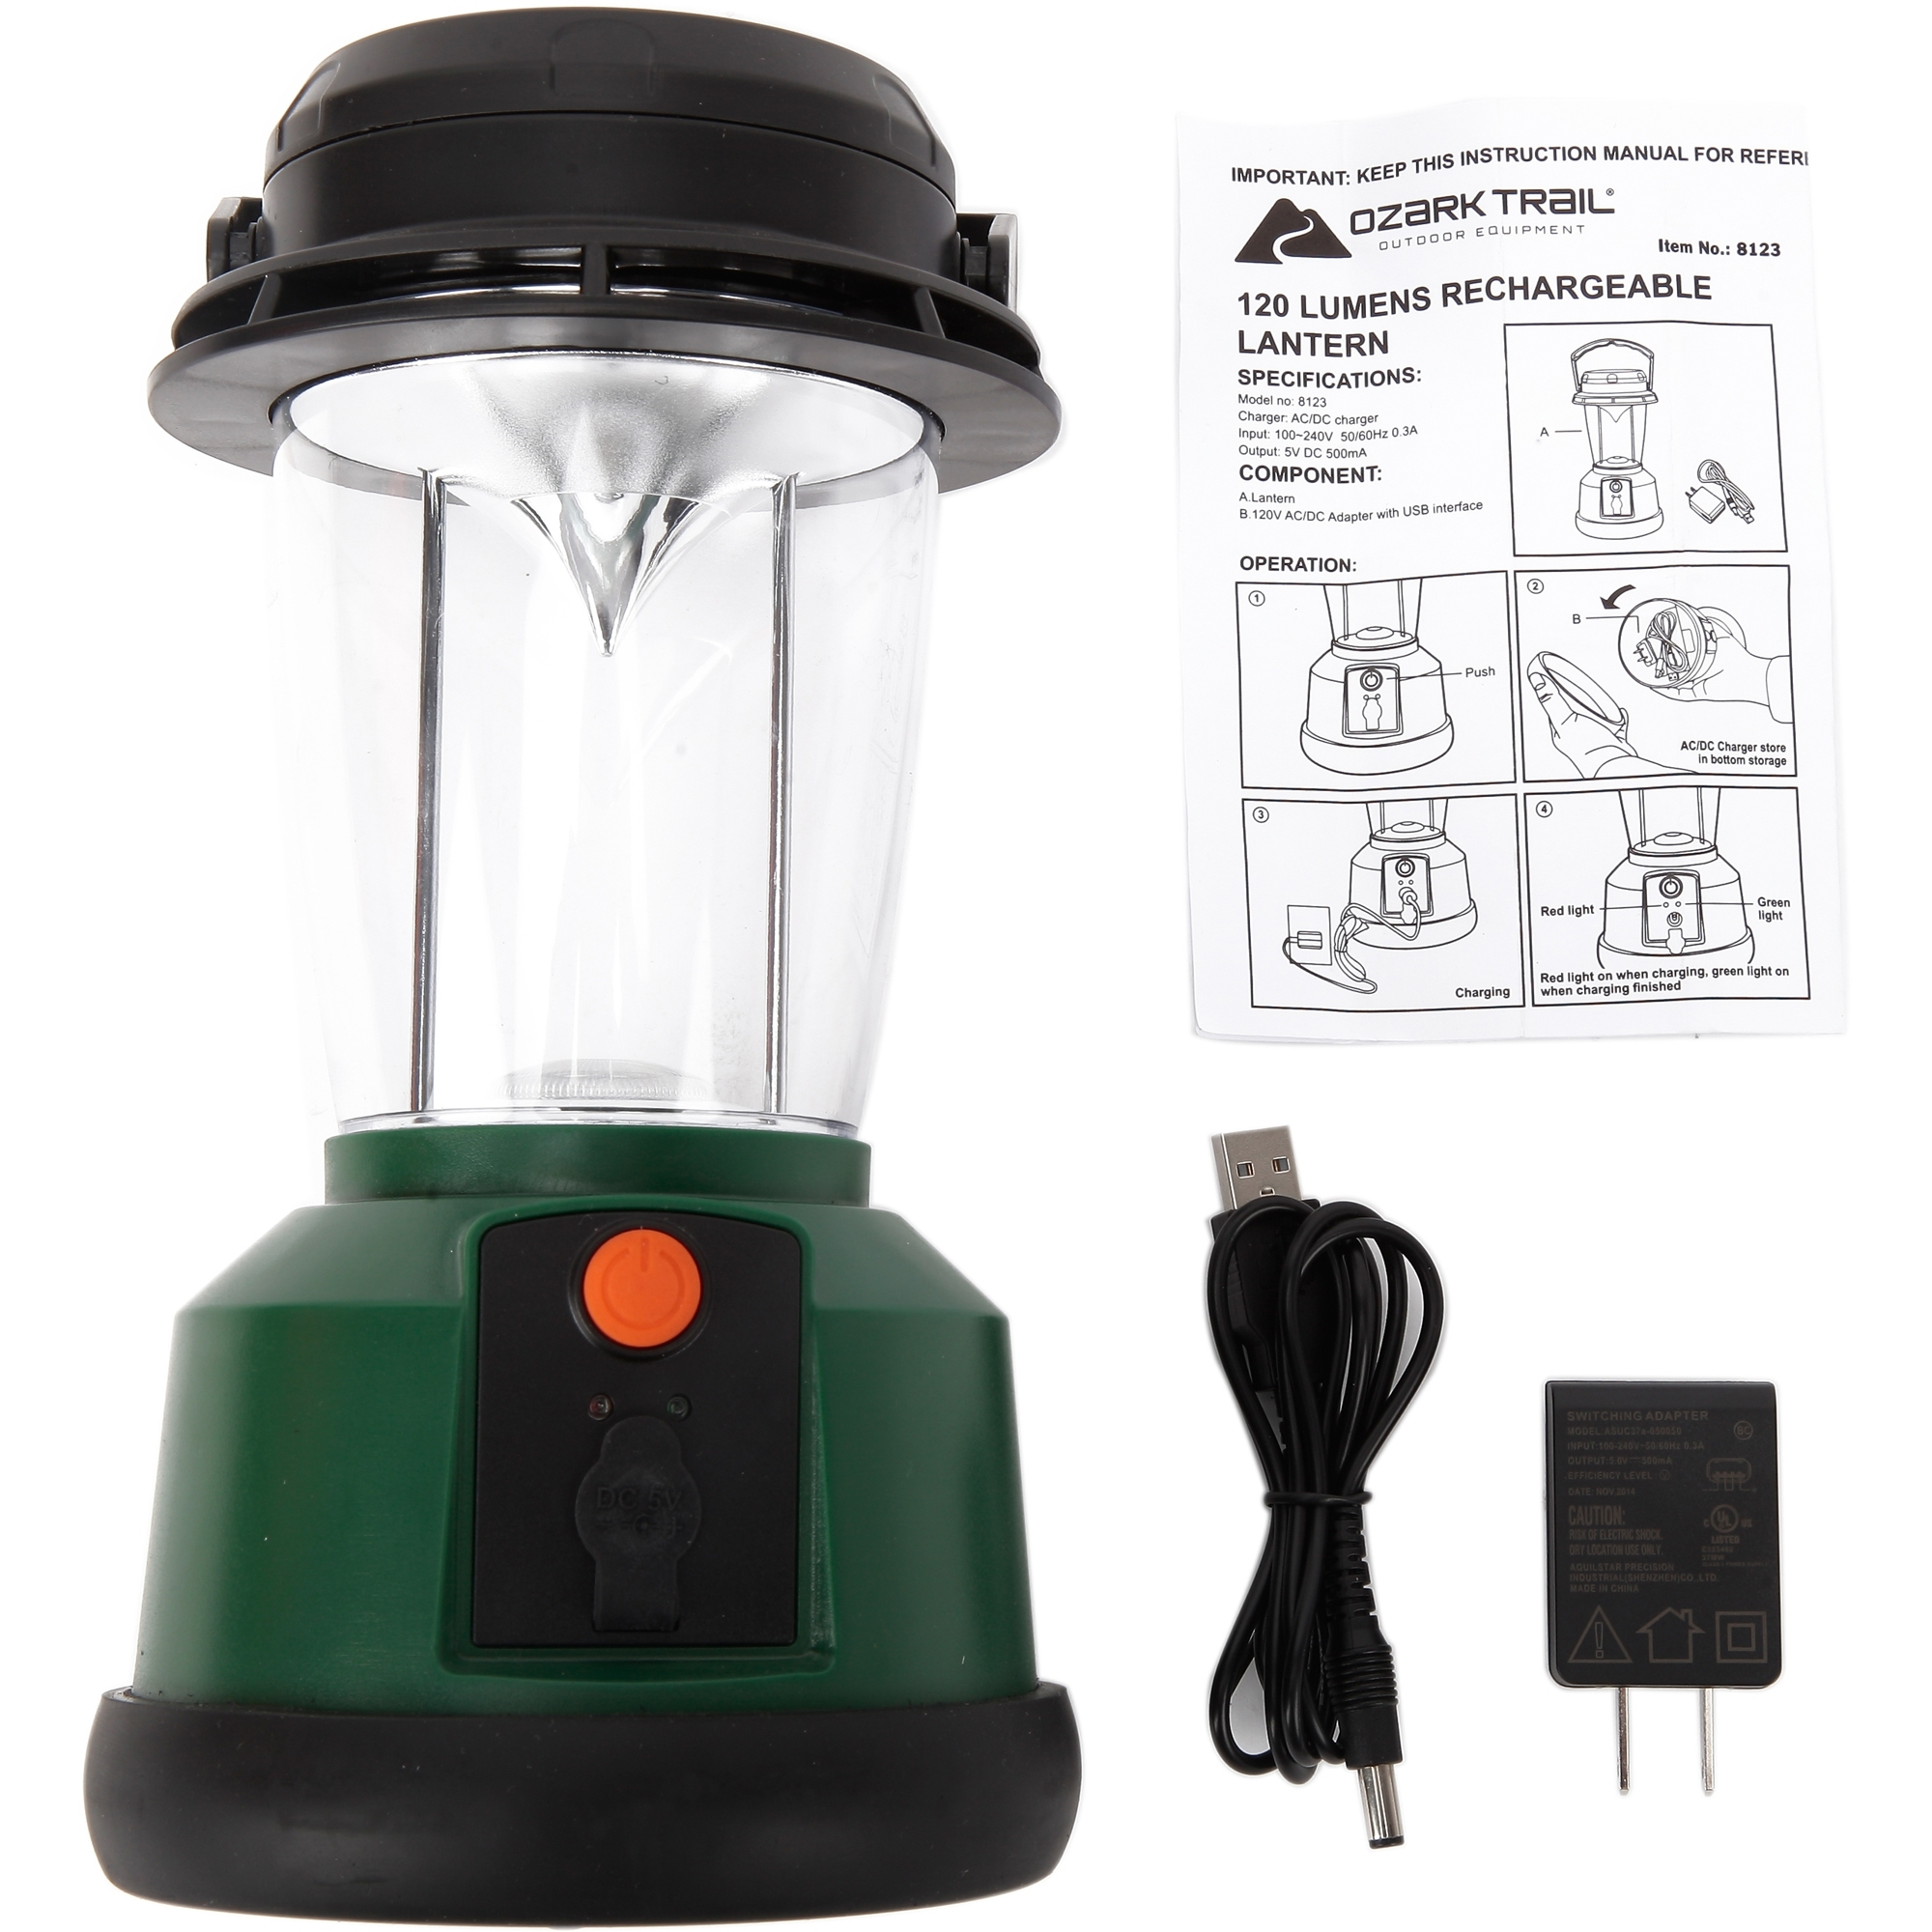 Led Rechargeable Lantern With 3 Mods And Usb Interface, 120 Lumens pertaining to Outdoor Rechargeable Lanterns (Image 12 of 20)